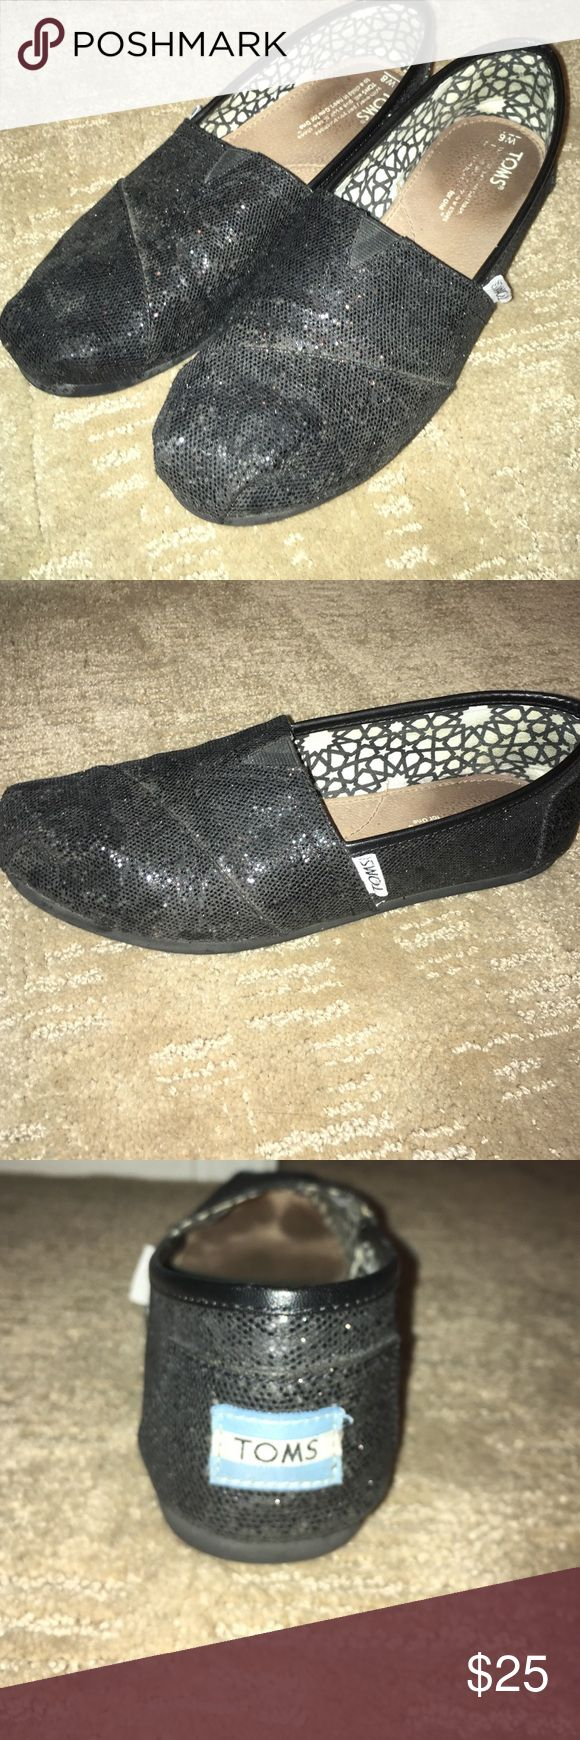 Black glitter TOMS classic slip ons Authentic black glitter TOM shoes, women's size 8. Previously loved, so it has some slightly worn spots but nothing too noticeable :) TOMS Shoes Flats & Loafers